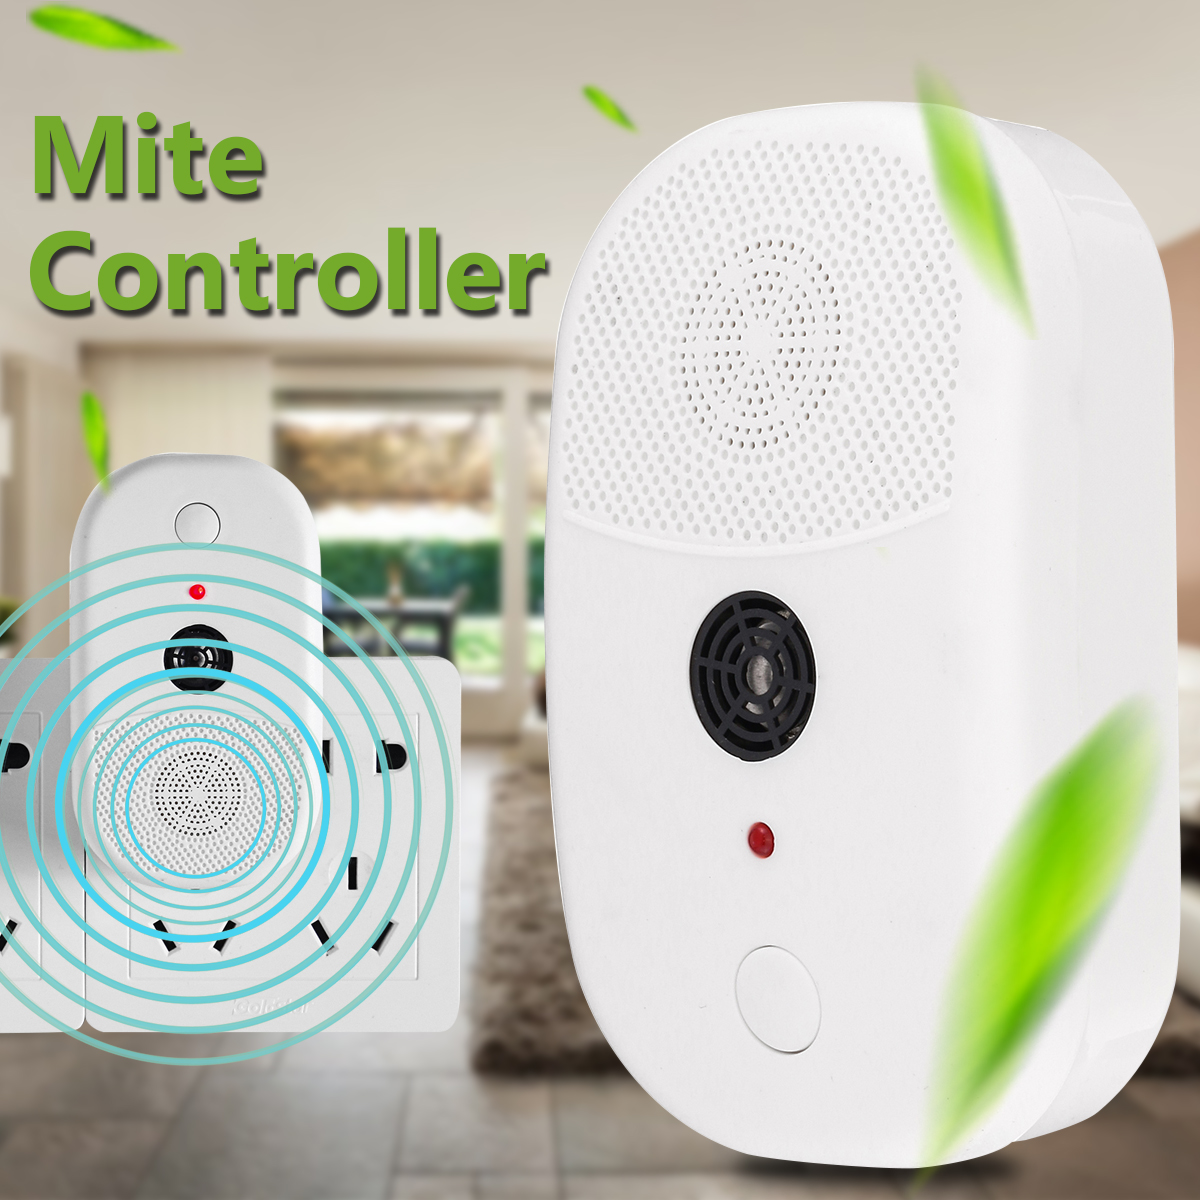 Mini Portable Ultrasonic Wave Mite Killer Household Electric Mite Killing Controller Bed Bug Dust Mite Cleaner Repeller Tool ao 149 portable plastic ultrasonic wave mosquito repeller black